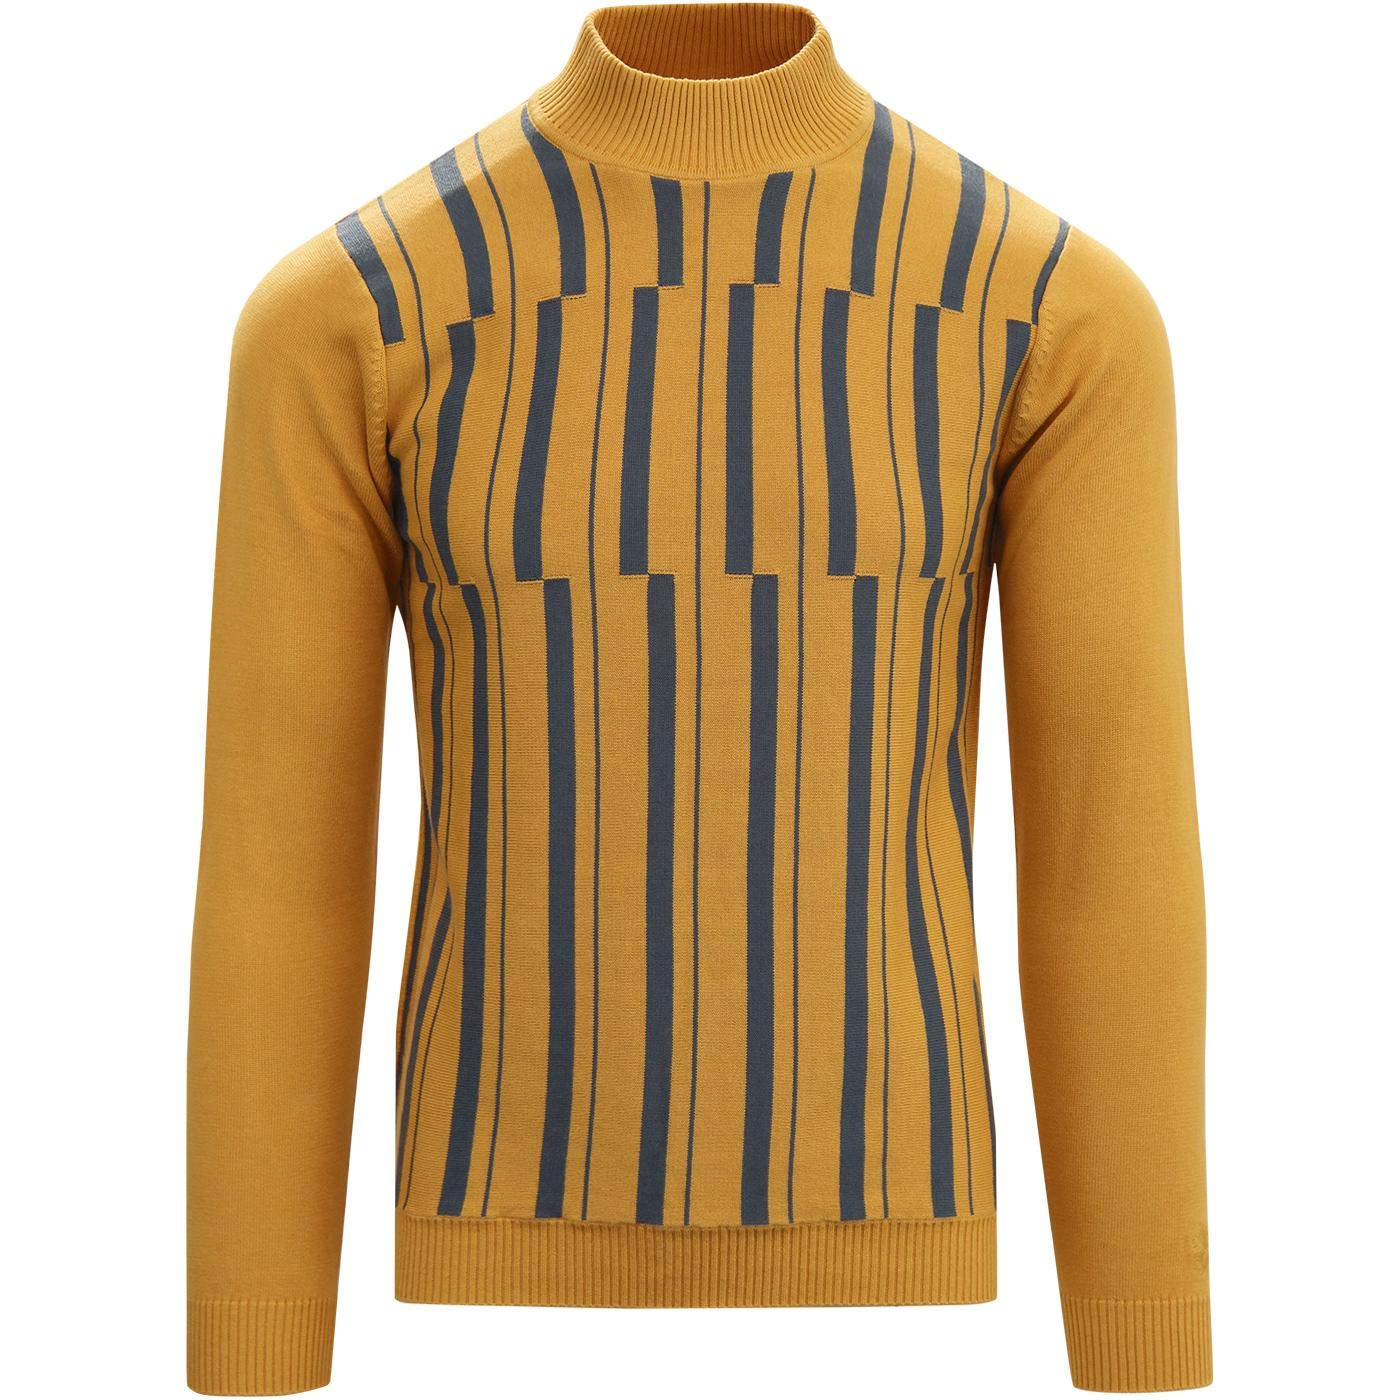 60s 70s Men's Clothing UK | Shirts, Trousers, Shoes Madcap England Symphony Retro 60s 70s Mod Abstract Stripe Knitted Turtleneck (Mock Turtle) Jumper £39.99 AT vintagedancer.com